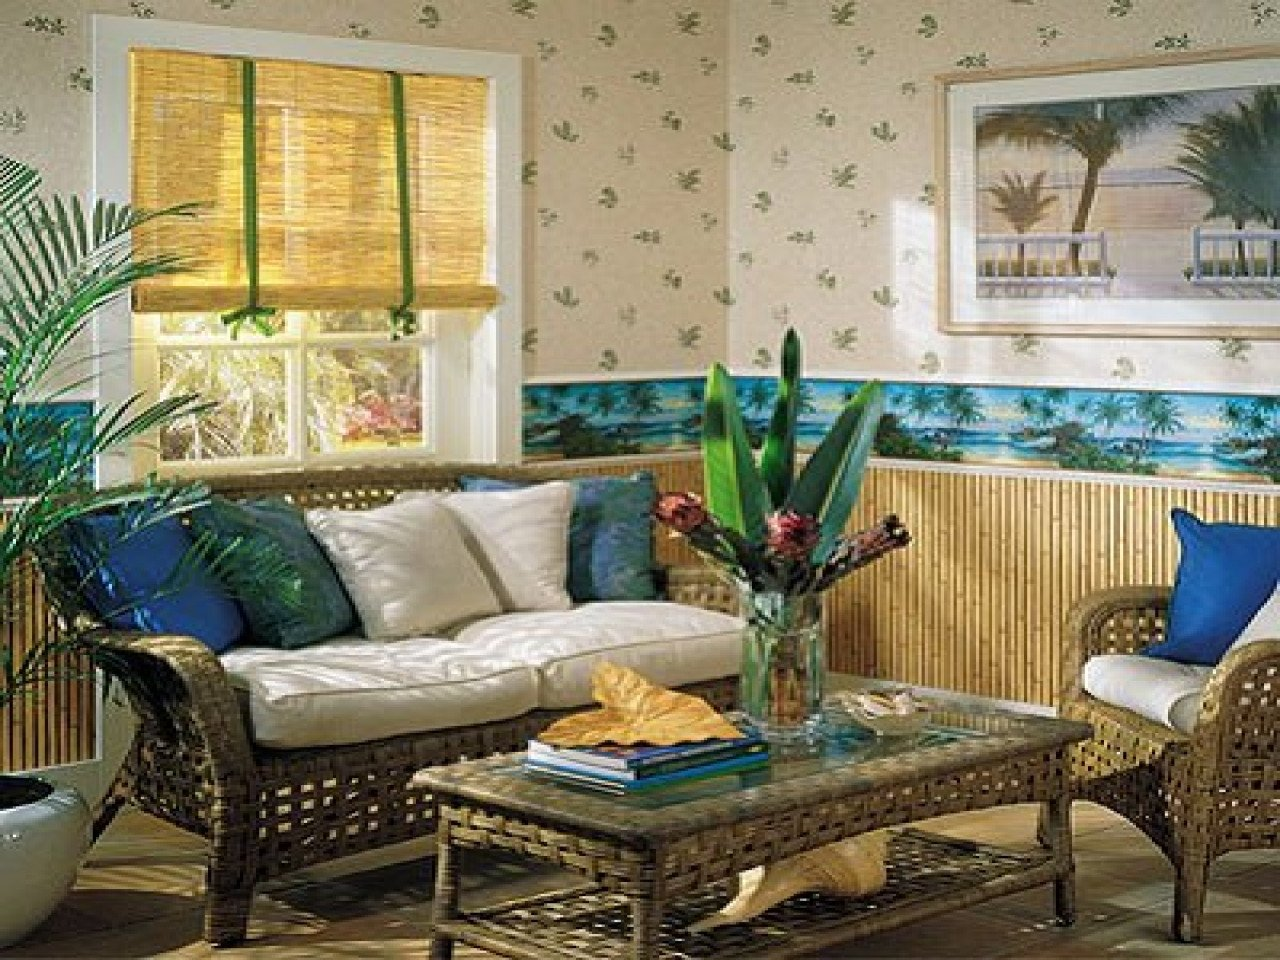 Comfortable Living Room Decorating Ideas Tropical themed Bedrooms island Living Room Decorating